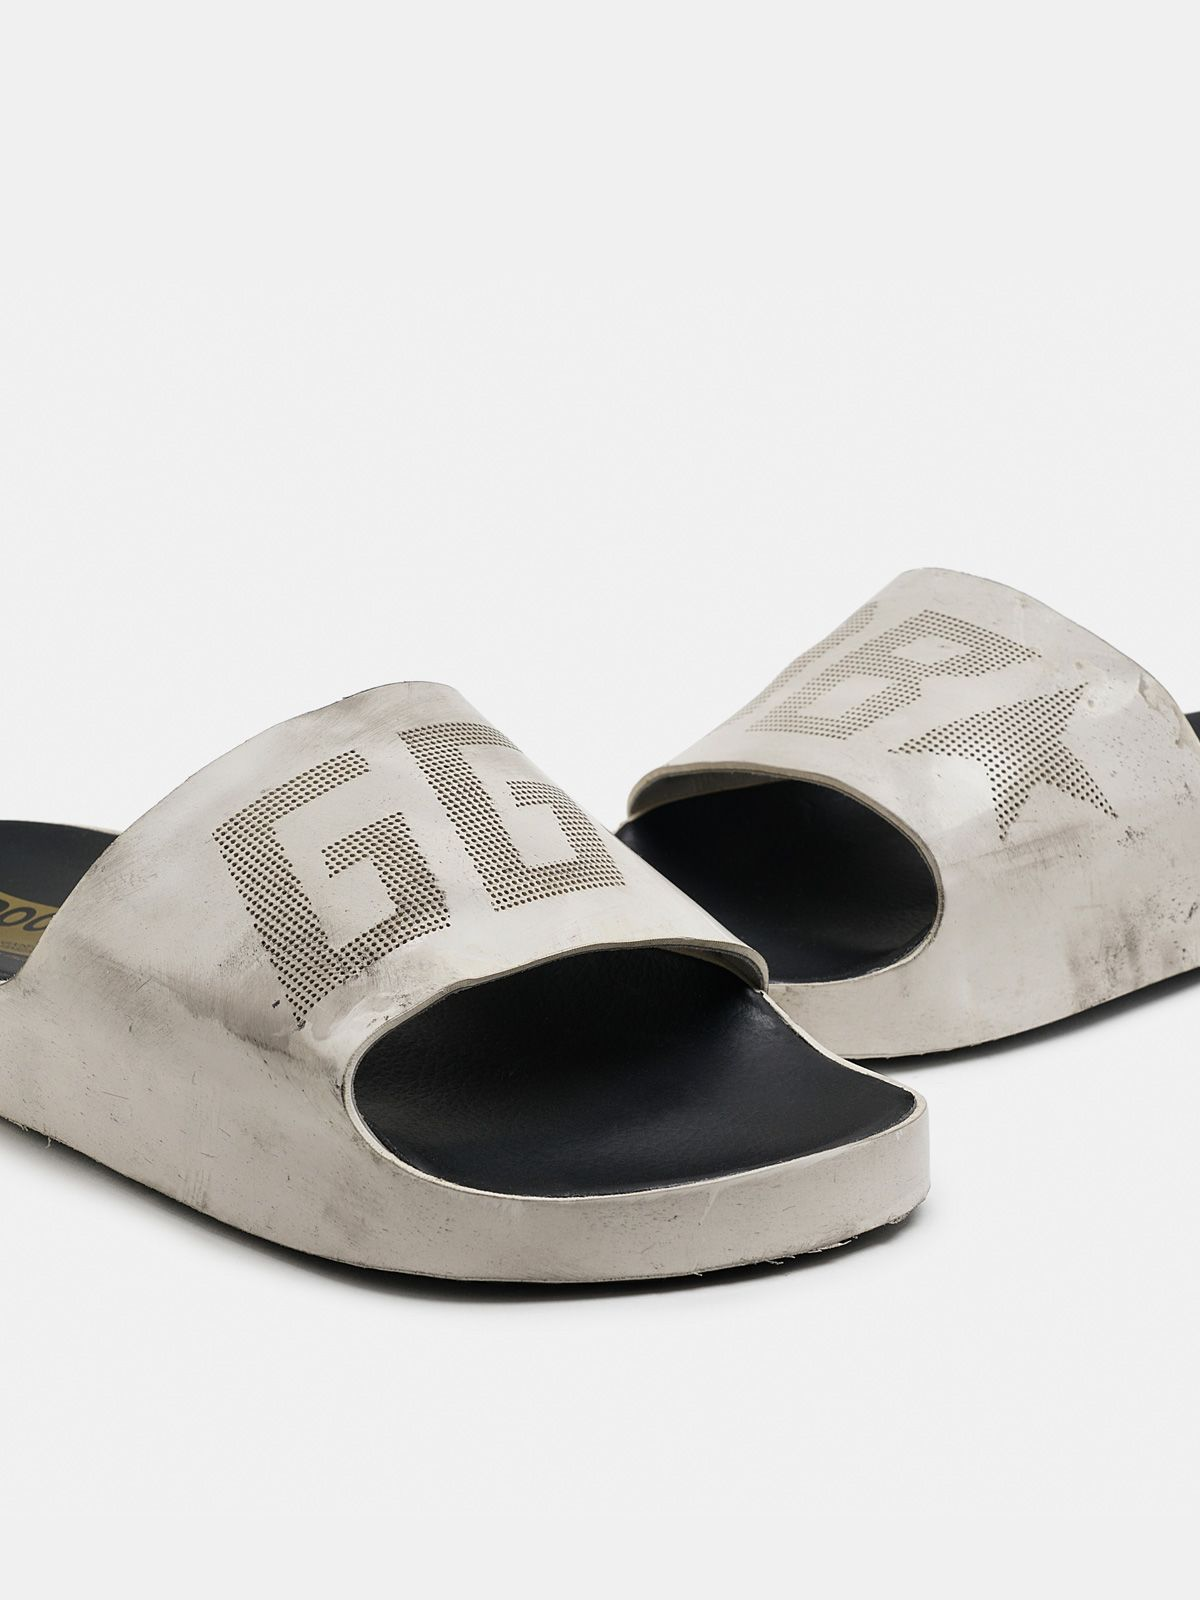 Golden Goose - Poolstar uomo bianche con logo GGDB in